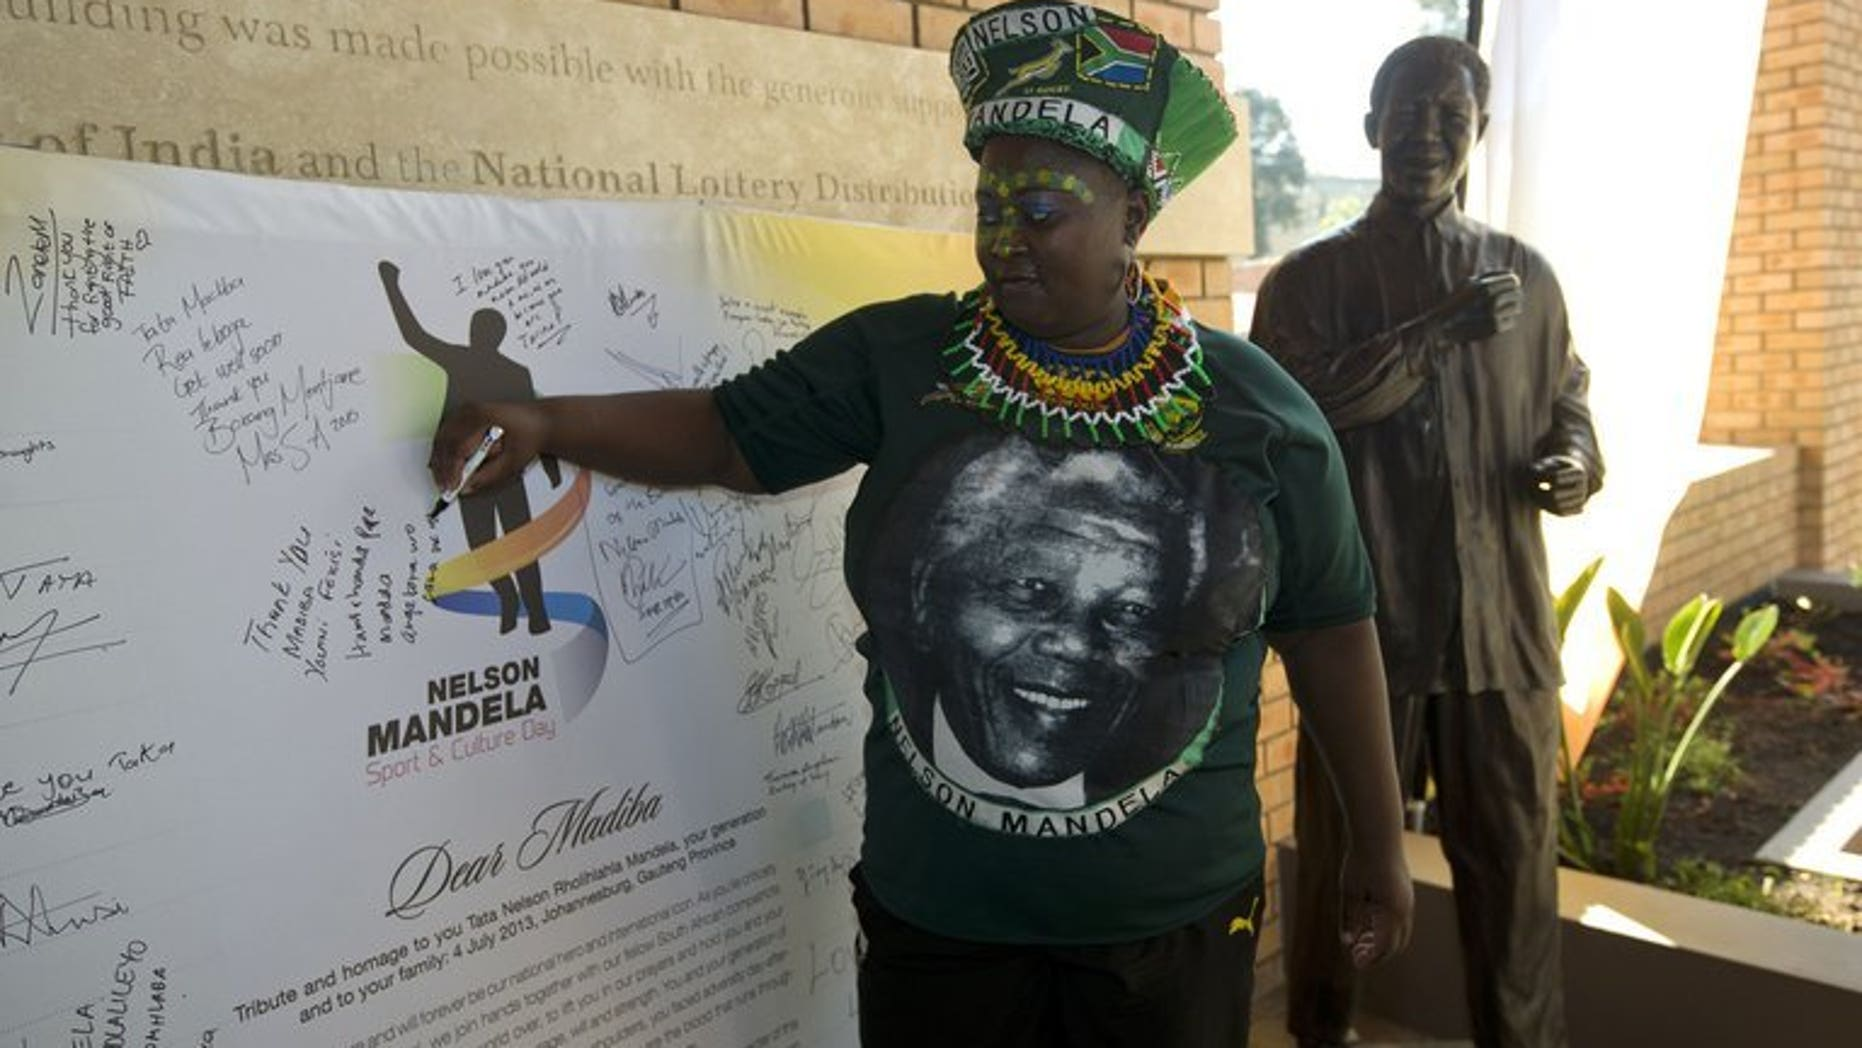 A rugby fan writes a message to Nelson Mandela in Johannesburg on July 4, 2013. South Africa's national team will have an outline image of Nelson Mandela on a sleeve of their shirts when they tackle Argentina Saturday in the Rugby Championship.